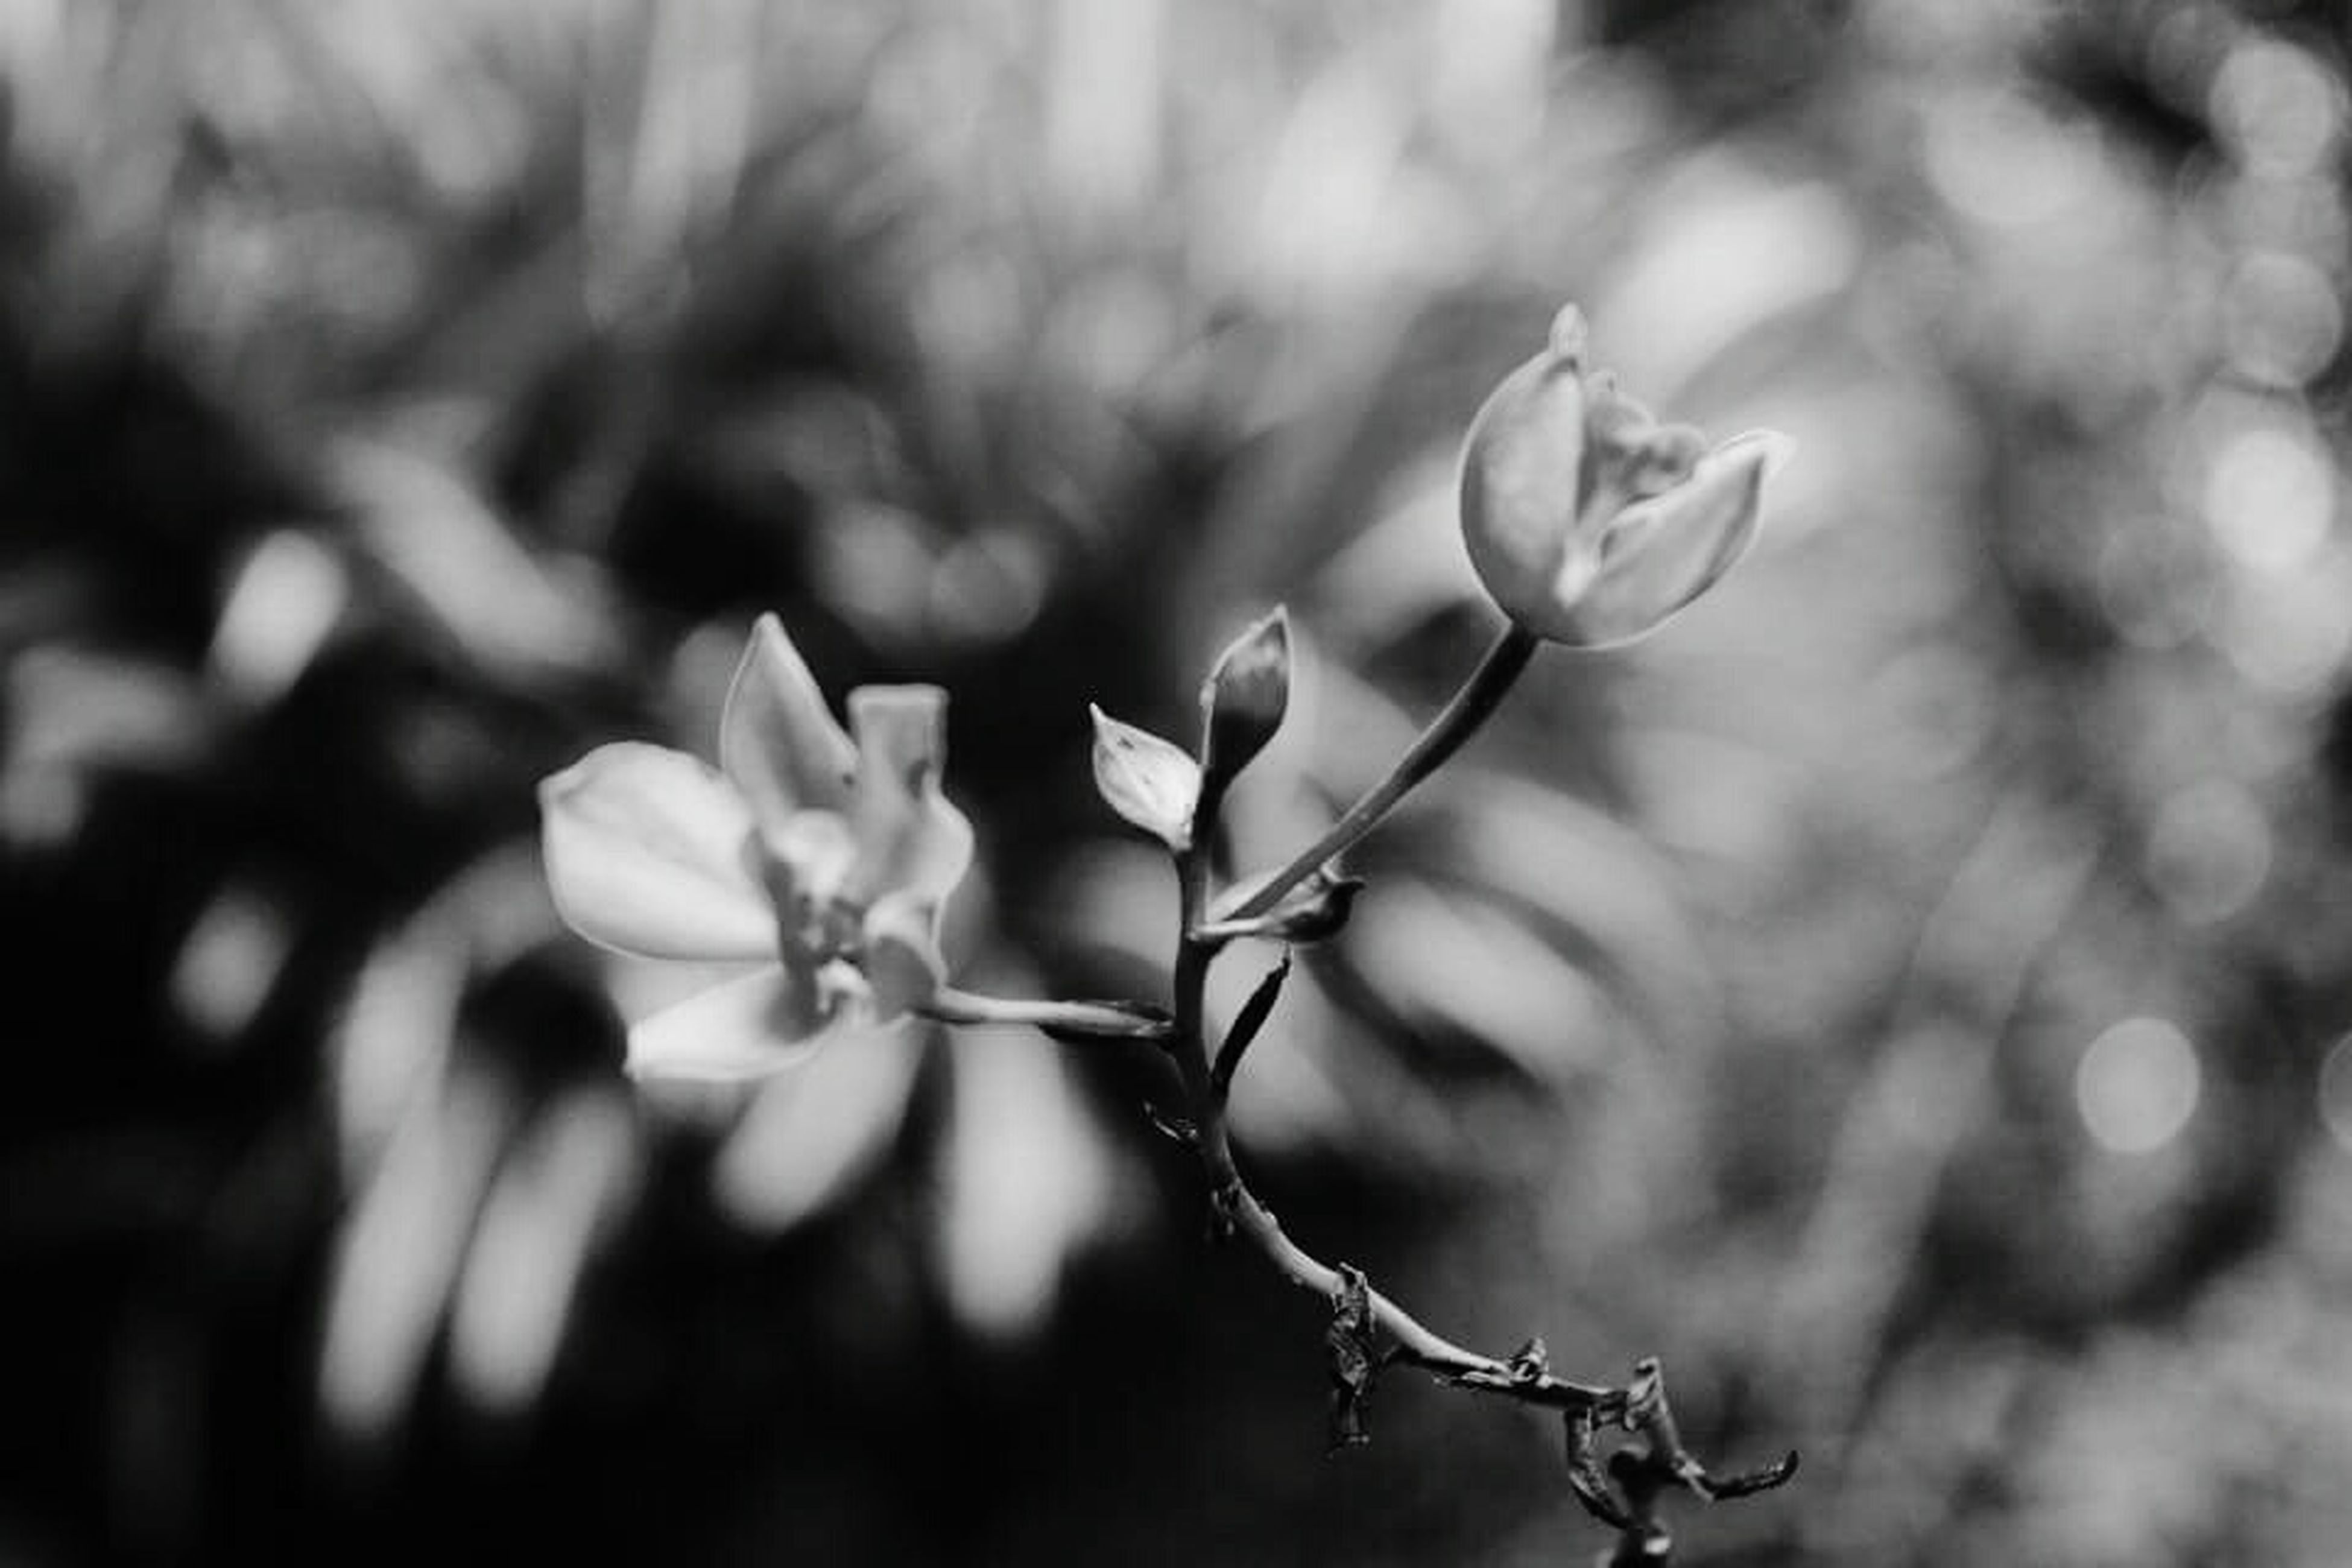 flower, freshness, growth, fragility, focus on foreground, petal, close-up, beauty in nature, nature, flower head, plant, blooming, selective focus, twig, bud, white color, stem, blossom, in bloom, branch